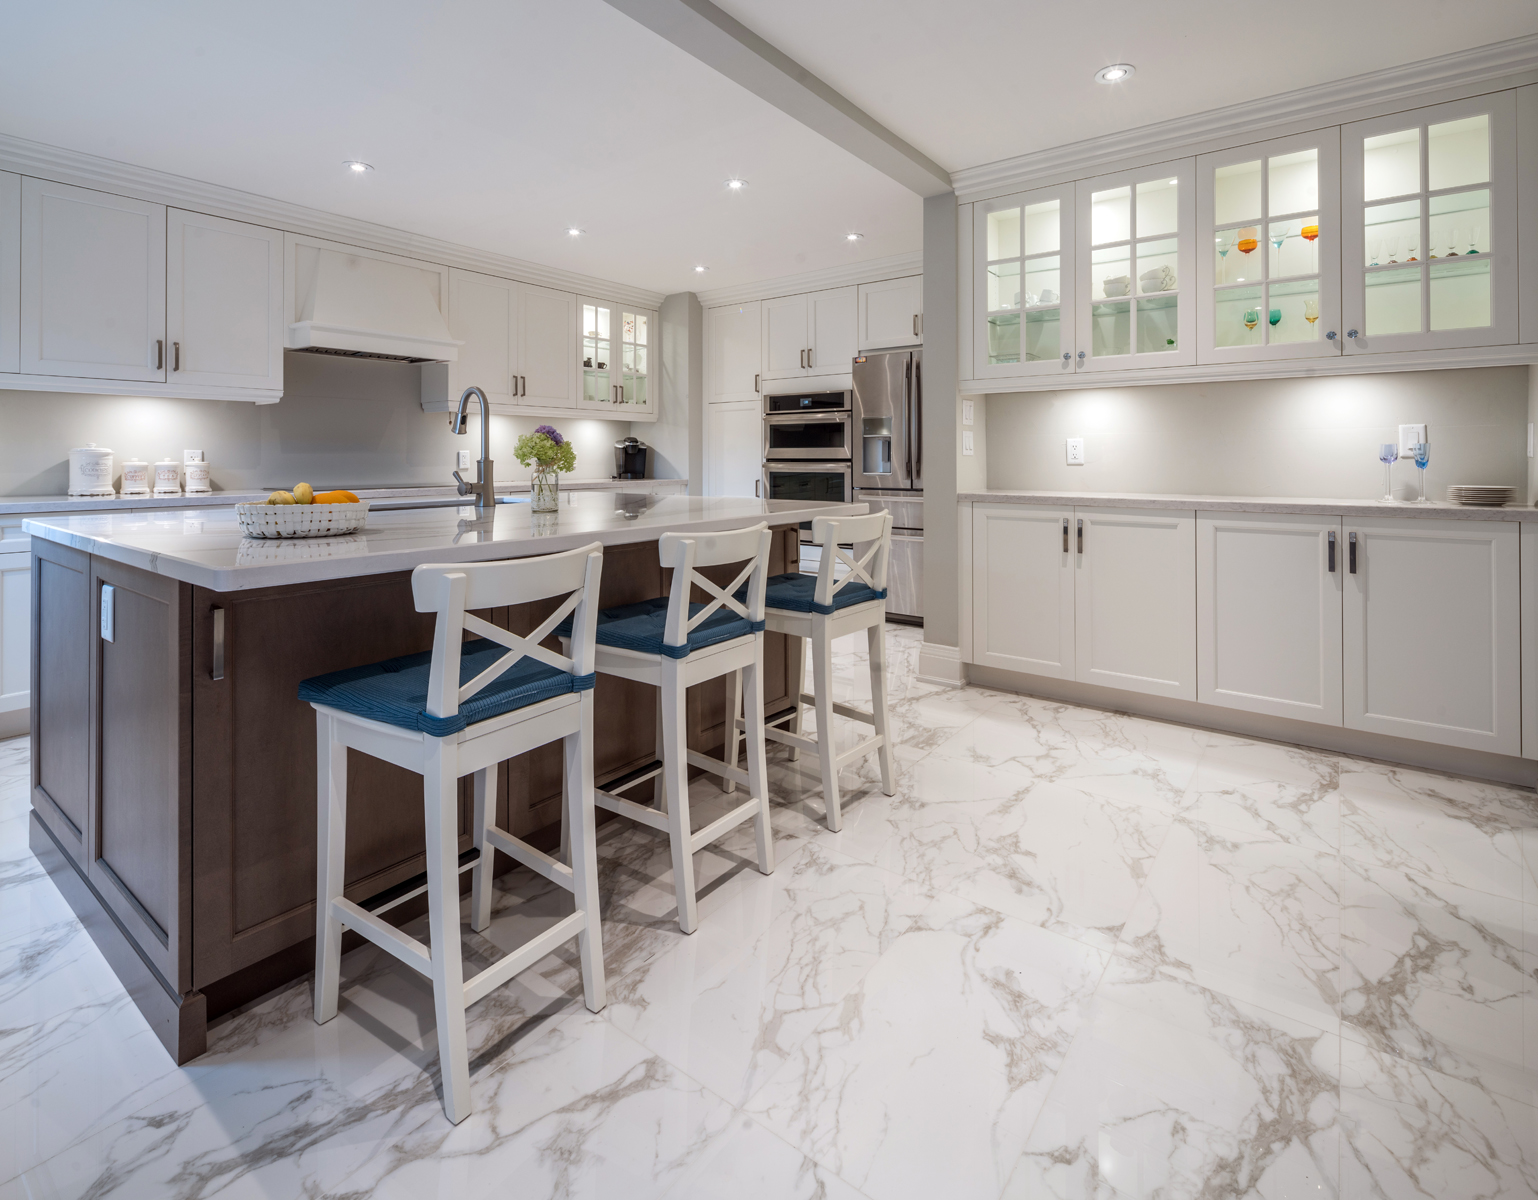 Home Amp Kitchen Renovation In Toronto Kitchen Renovation